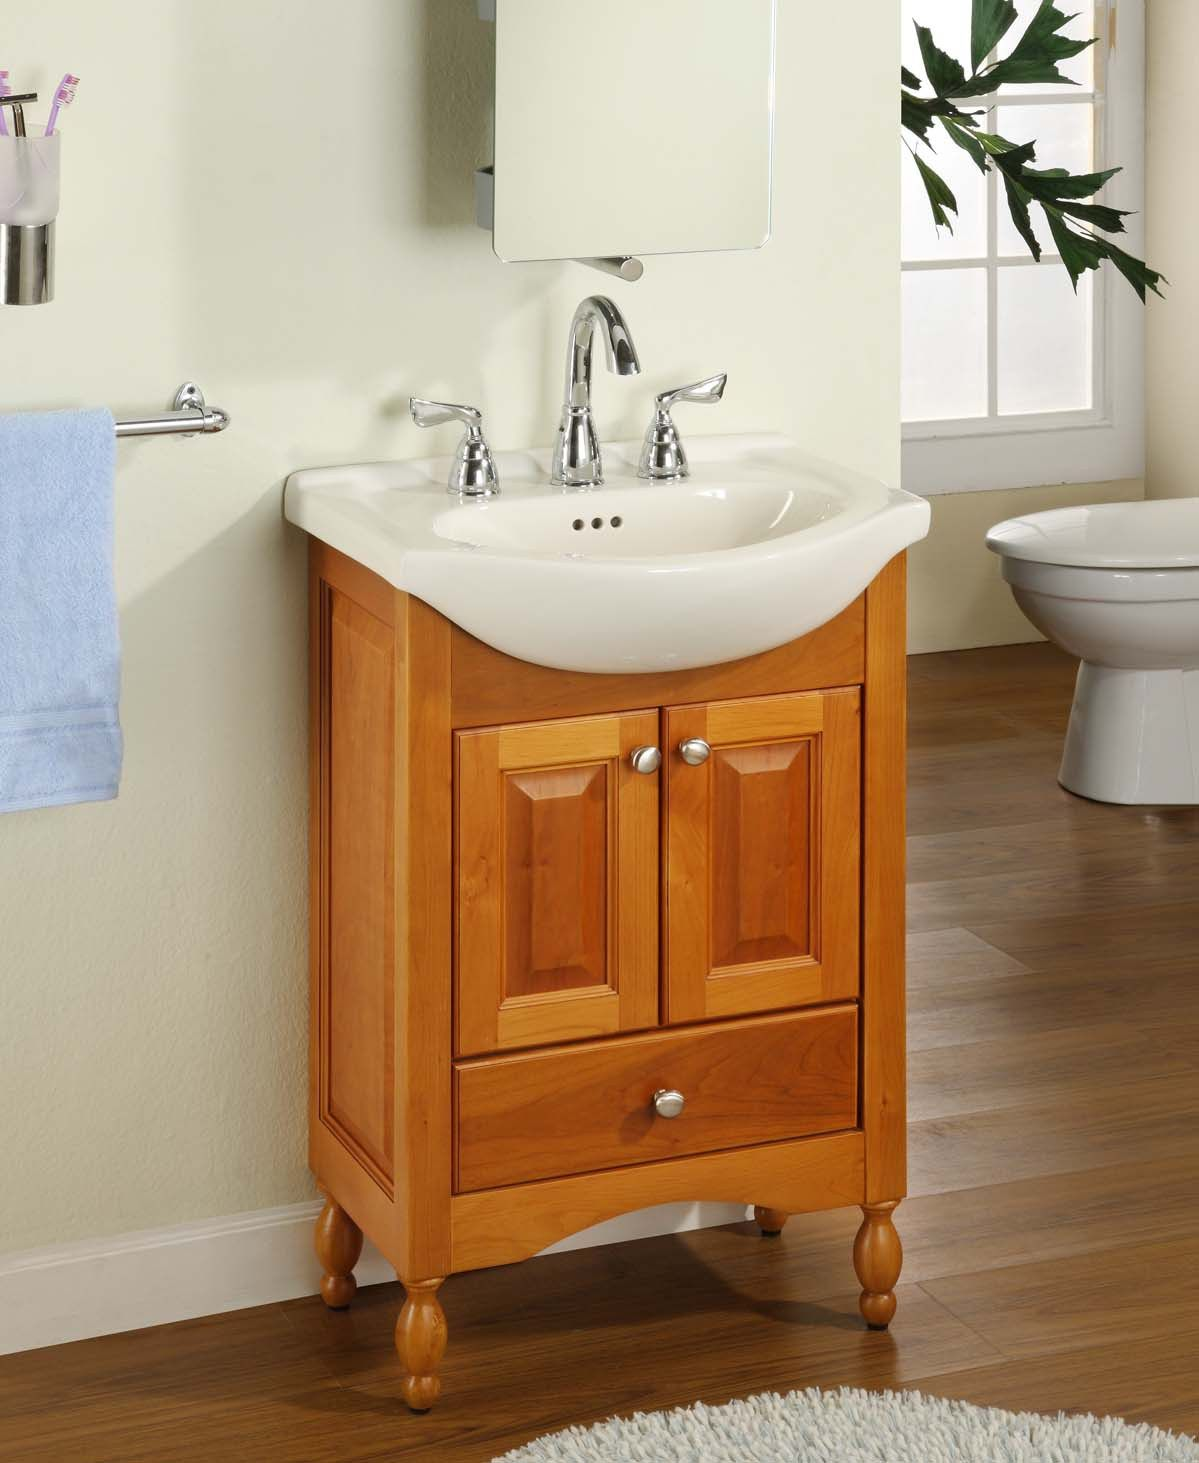 Exceptionnel Narrow Depth Bathroom Vanity Base Theydesign Inside Narrow Depth Bathroom  Vanity How To Renovate A Narrow